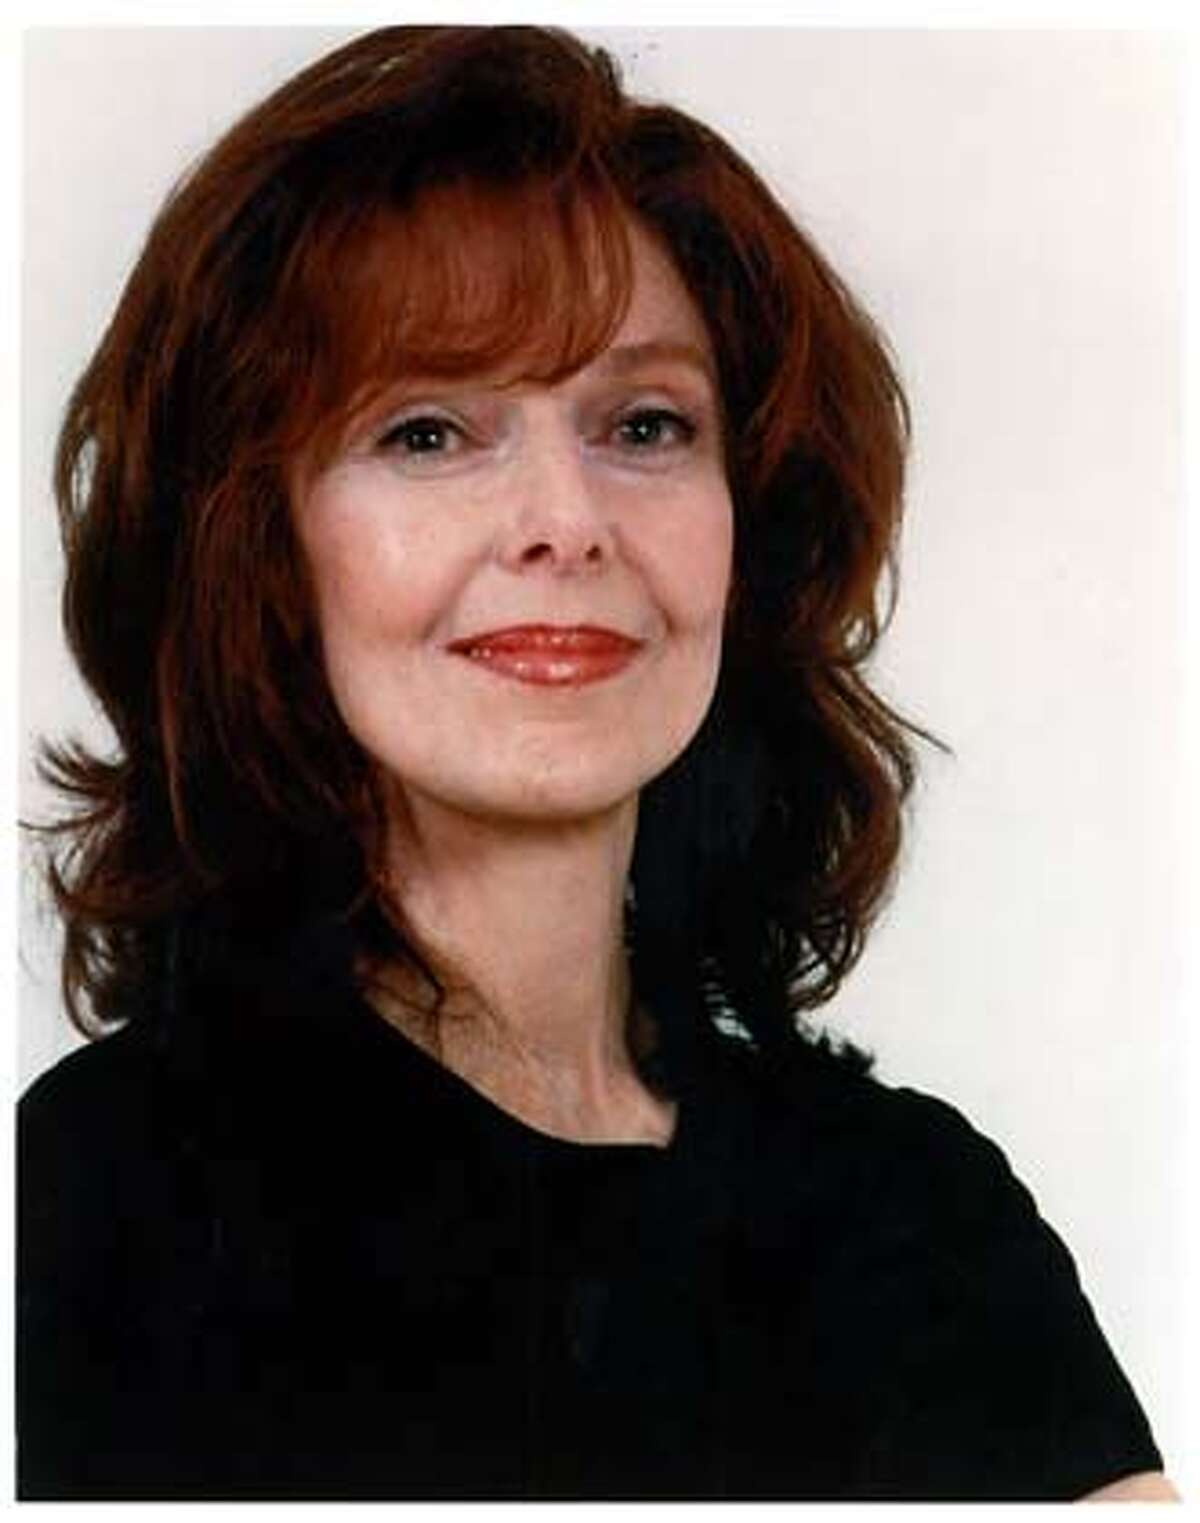 ELAINE MAY AT THE CITY ARTS & LECTURES MONDAY MAY 10, 2004 AT HERBST AUDITORIUM, SF, 8PM